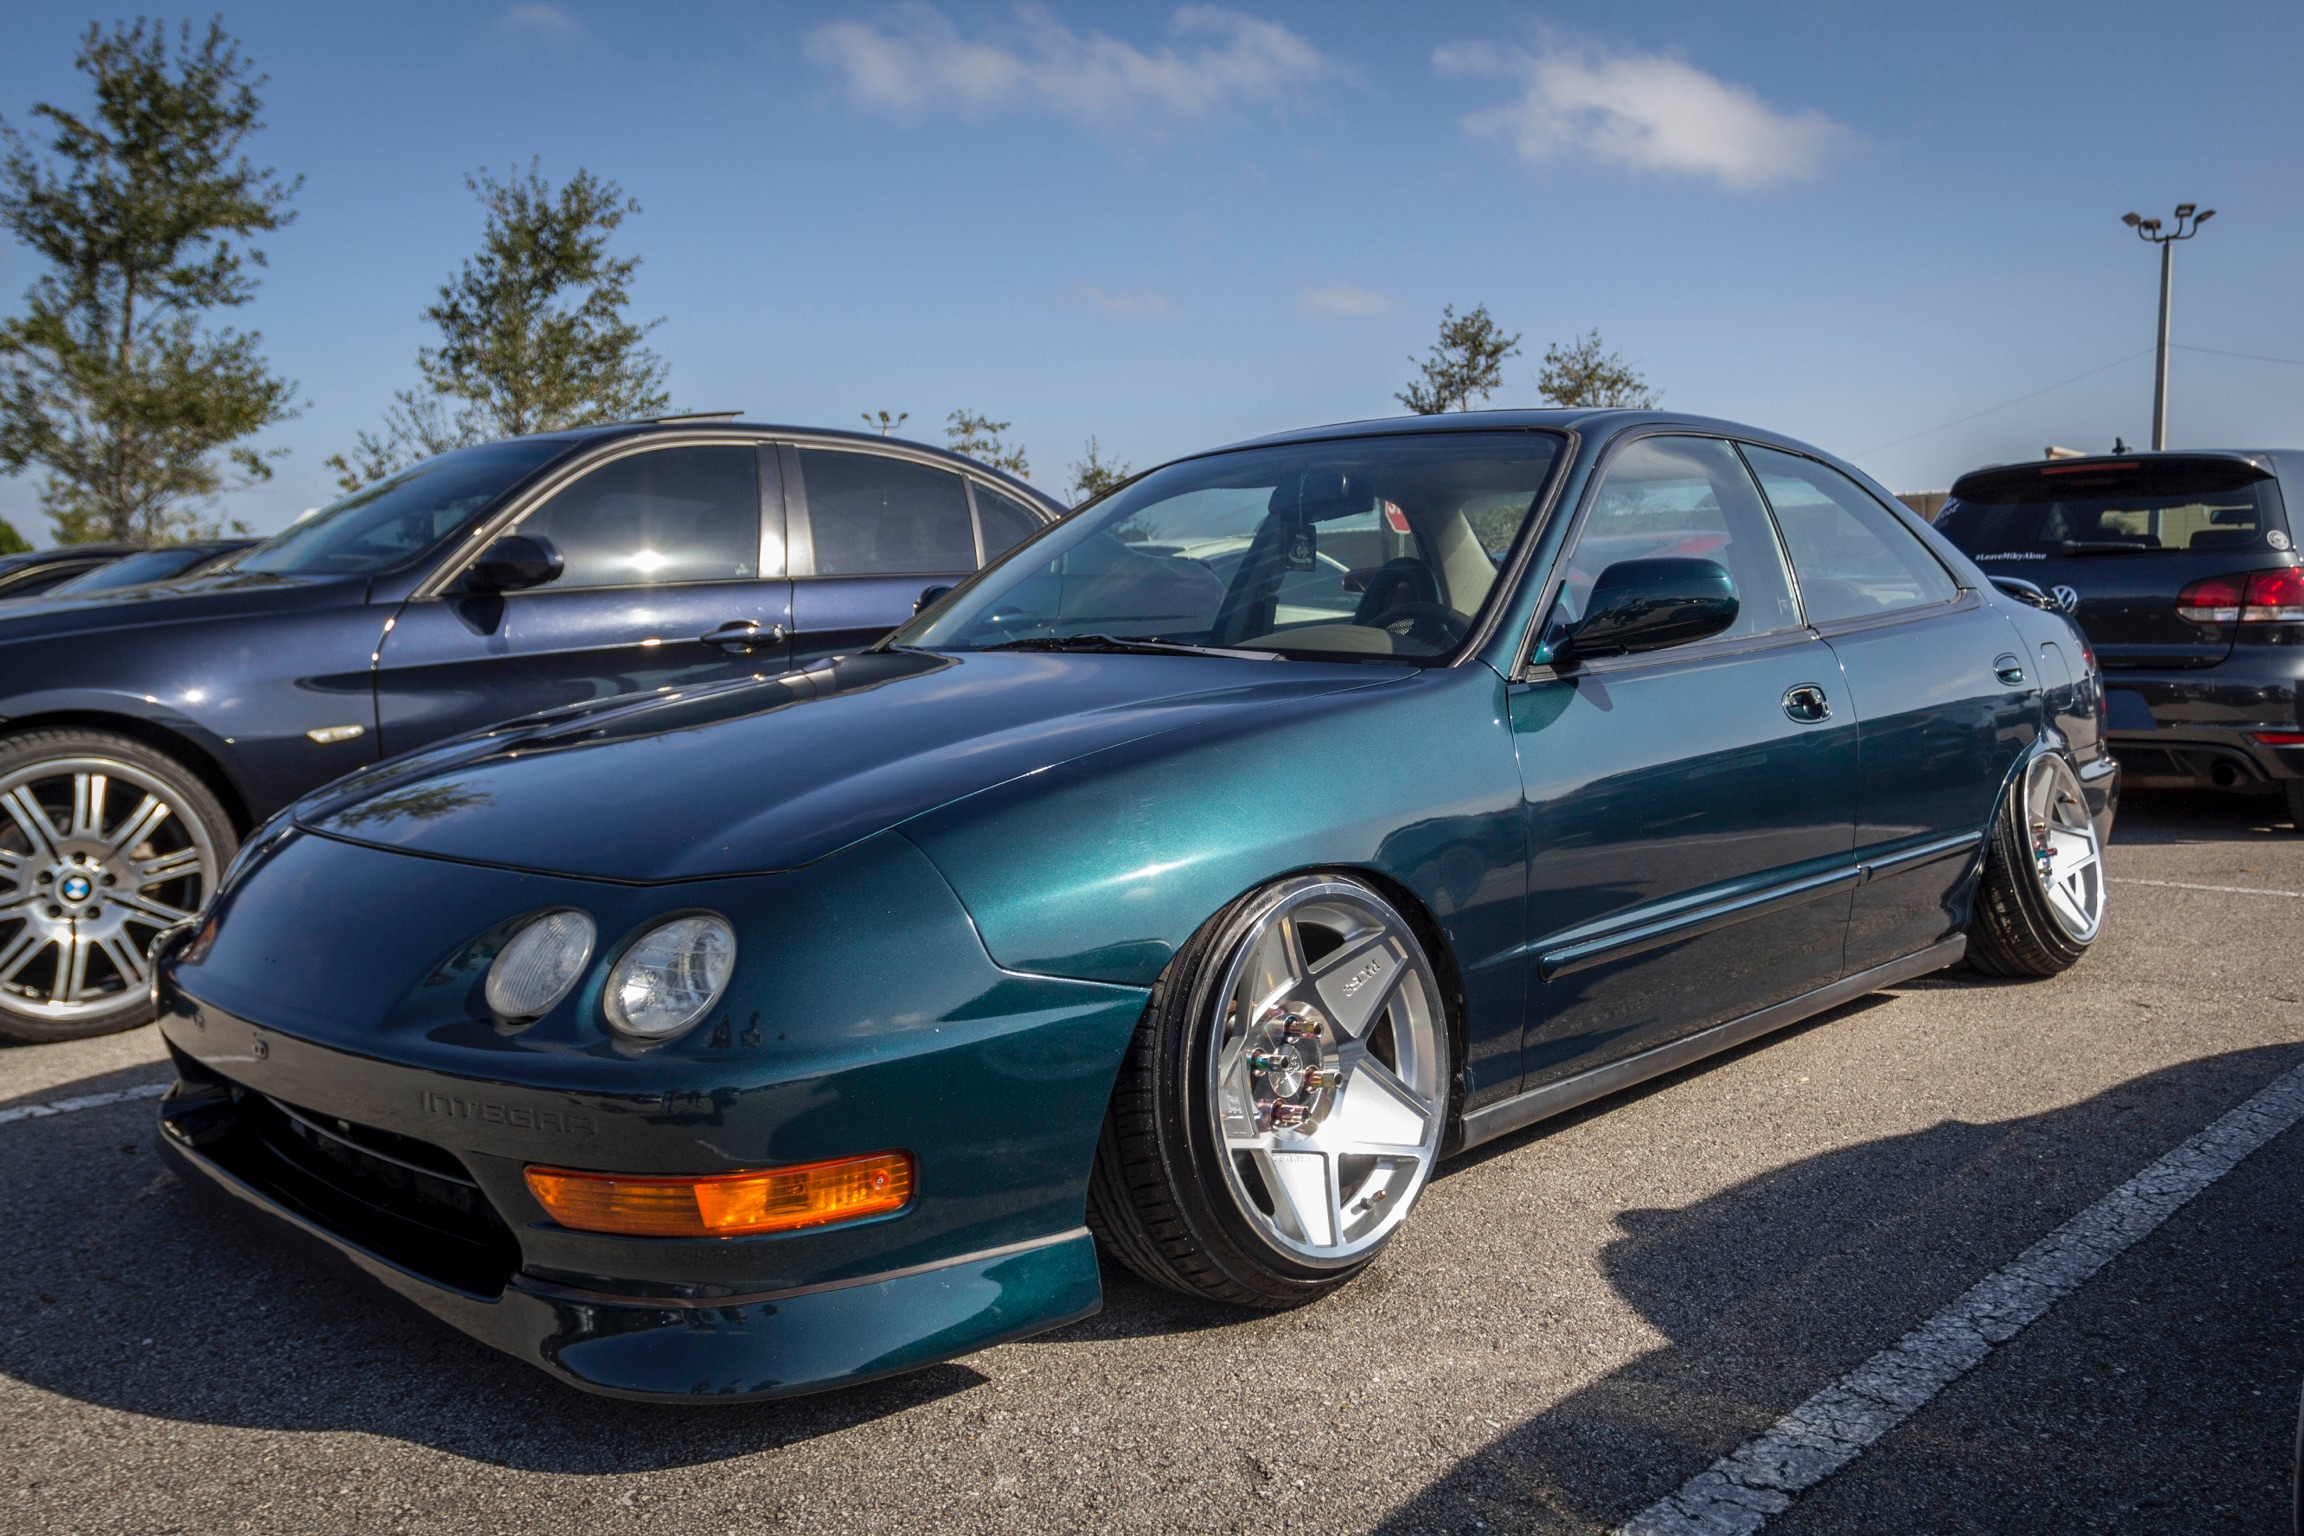 Acura Integra Custom Wheels Sdm X ET Tire Size - Acura integra tire size